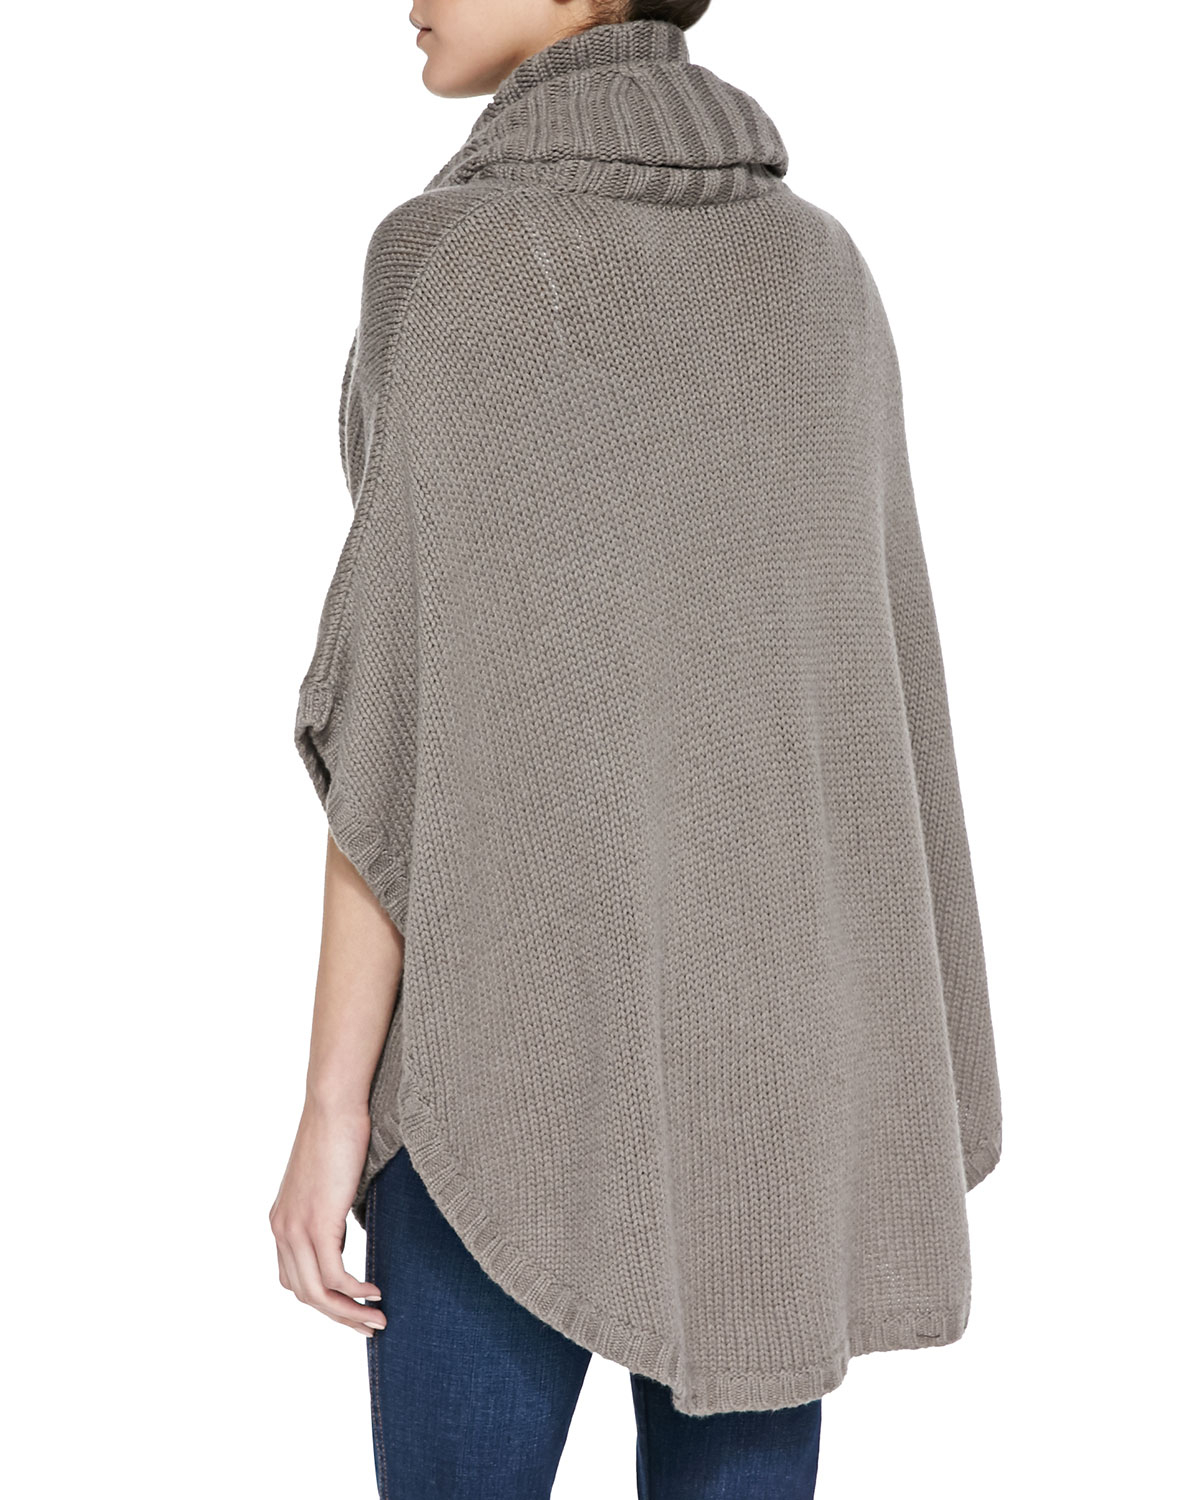 Knitting Pattern Cashmere Cowl : Autumn cashmere Cable-knit Cowl-neck Cashmere Poncho in Gray Lyst